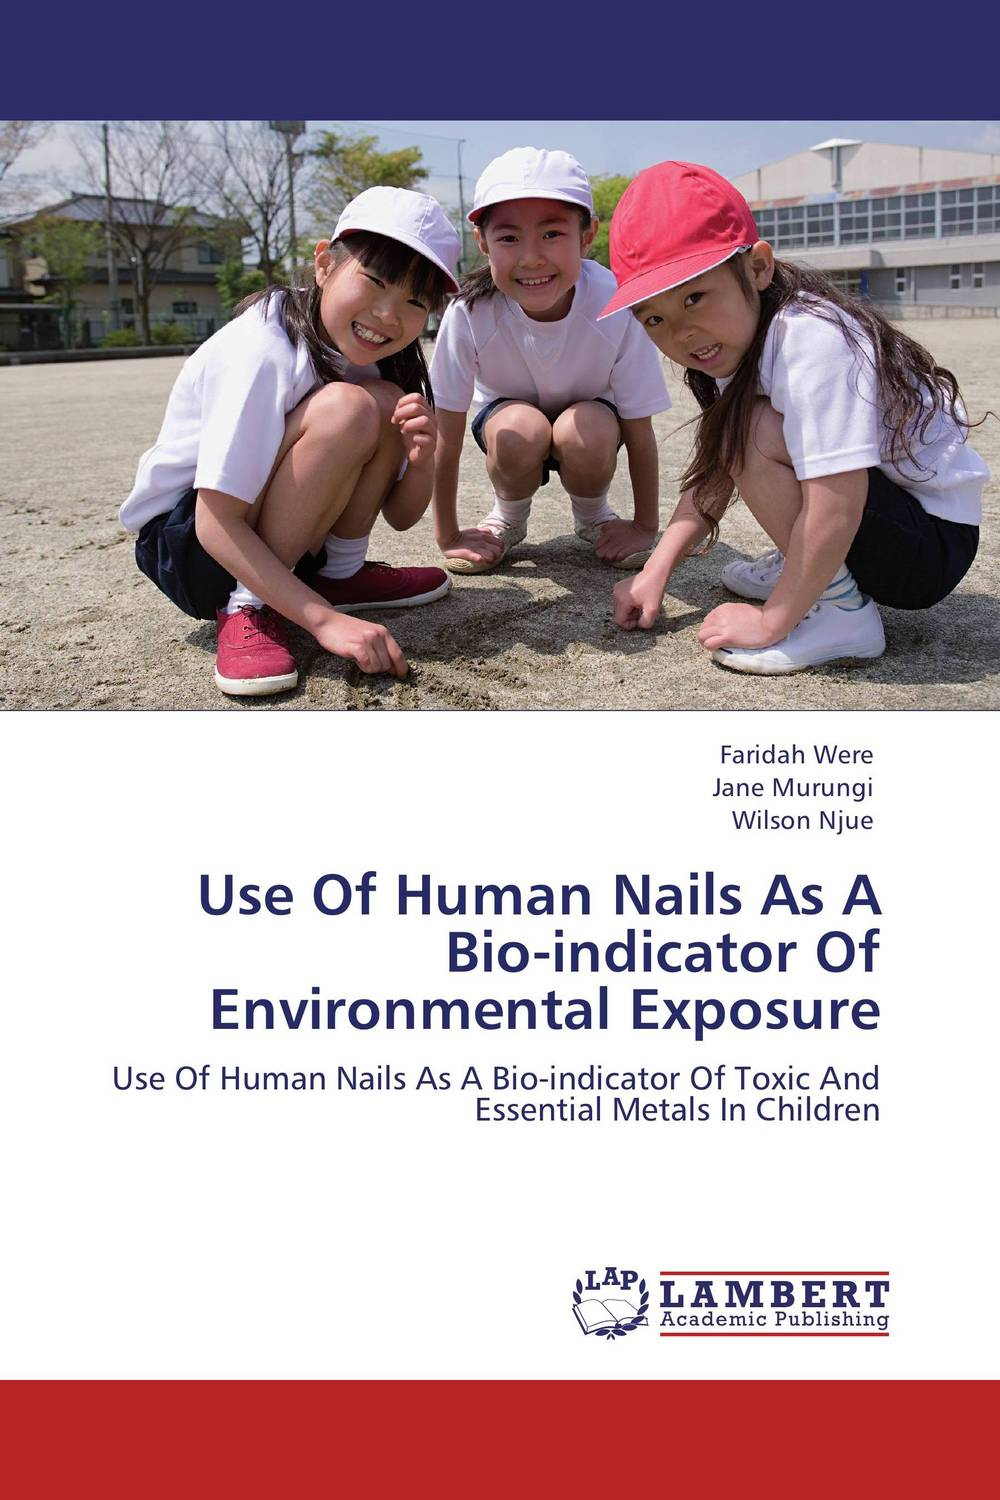 Use Of Human Nails As A Bio-indicator Of Environmental Exposure assessing the toxic effects of sodium metabisulphite